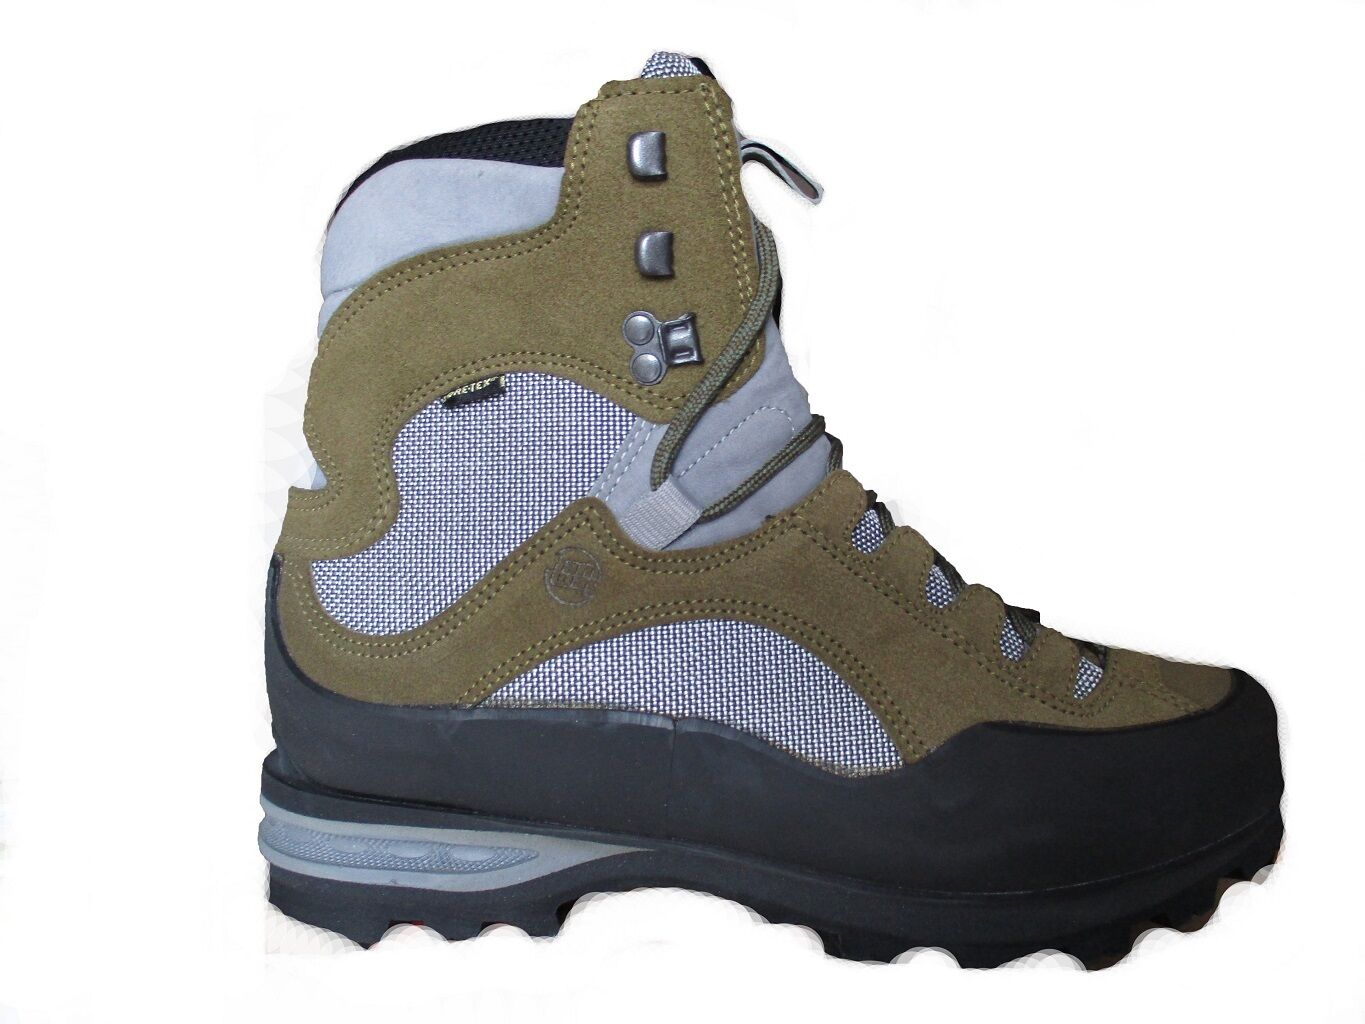 Hanwag Mountain schuhe Super Friction Lady GTX in Größe 42 in Bosso